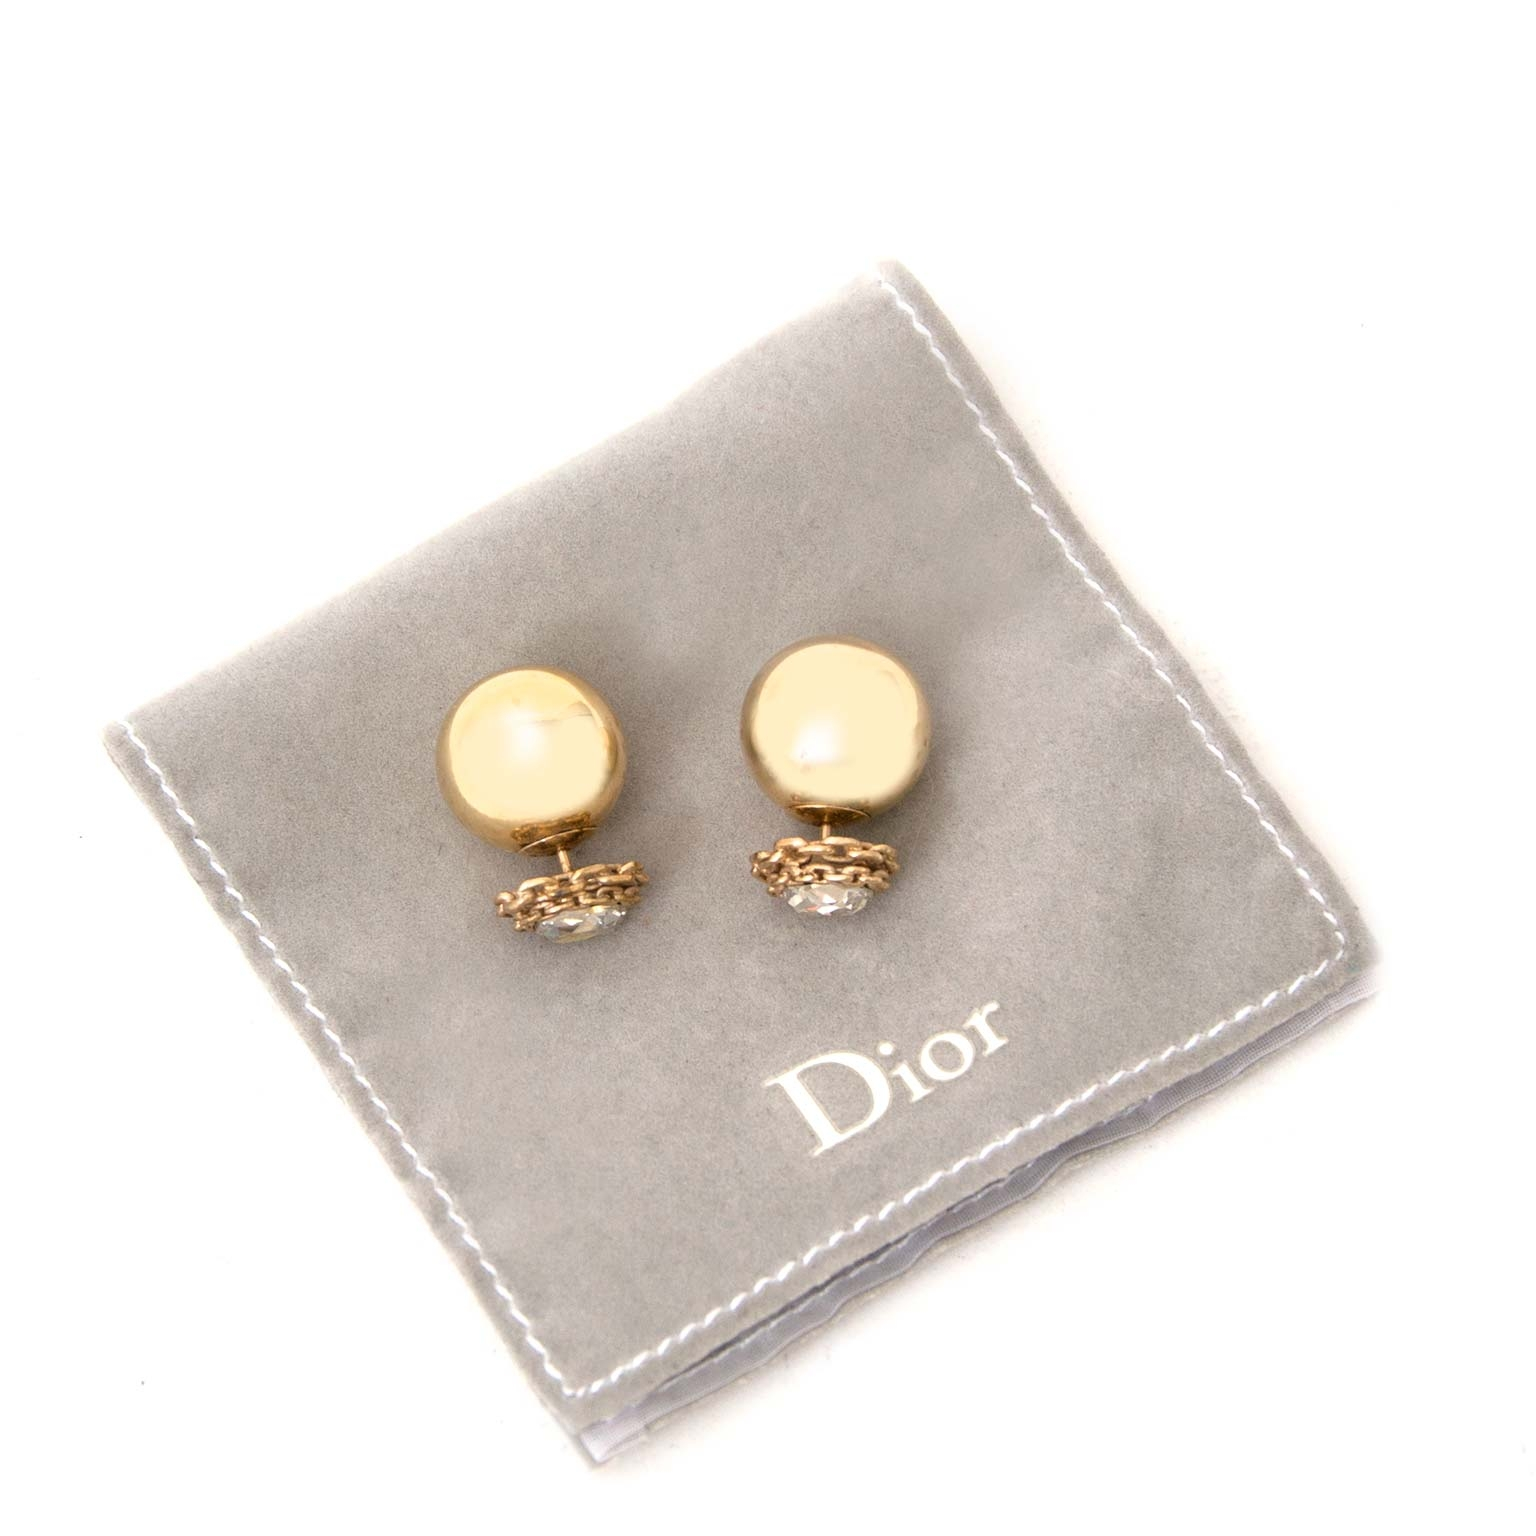 comme neuf boucle d'oreilles Chistian Dior Gold Rhinestone Tribal Earrings